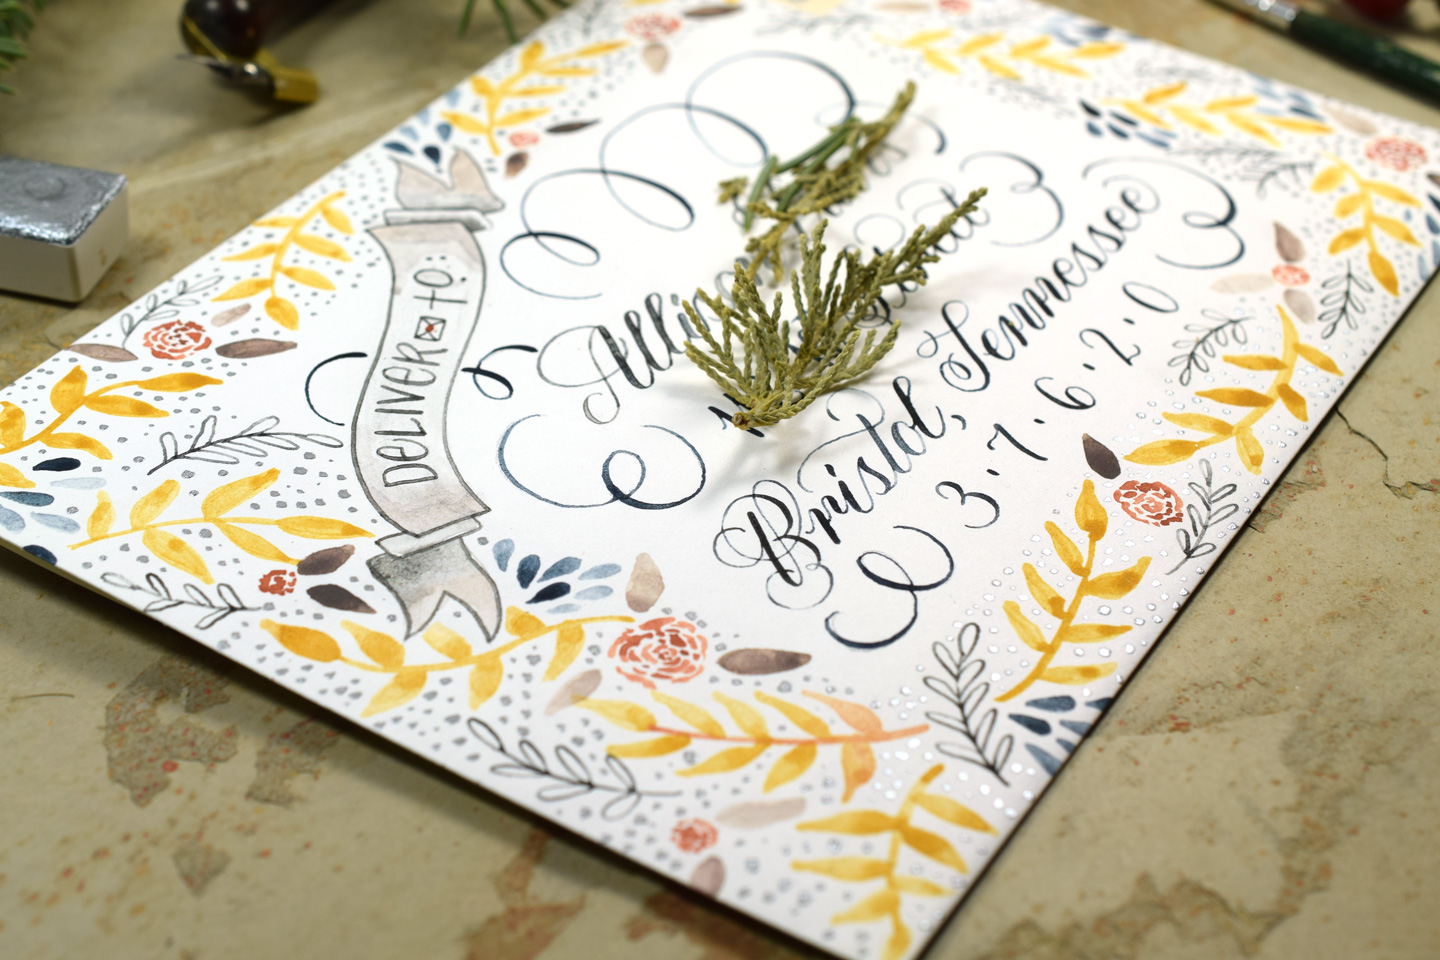 Watercolor Calligraphy | The Postman's Knock